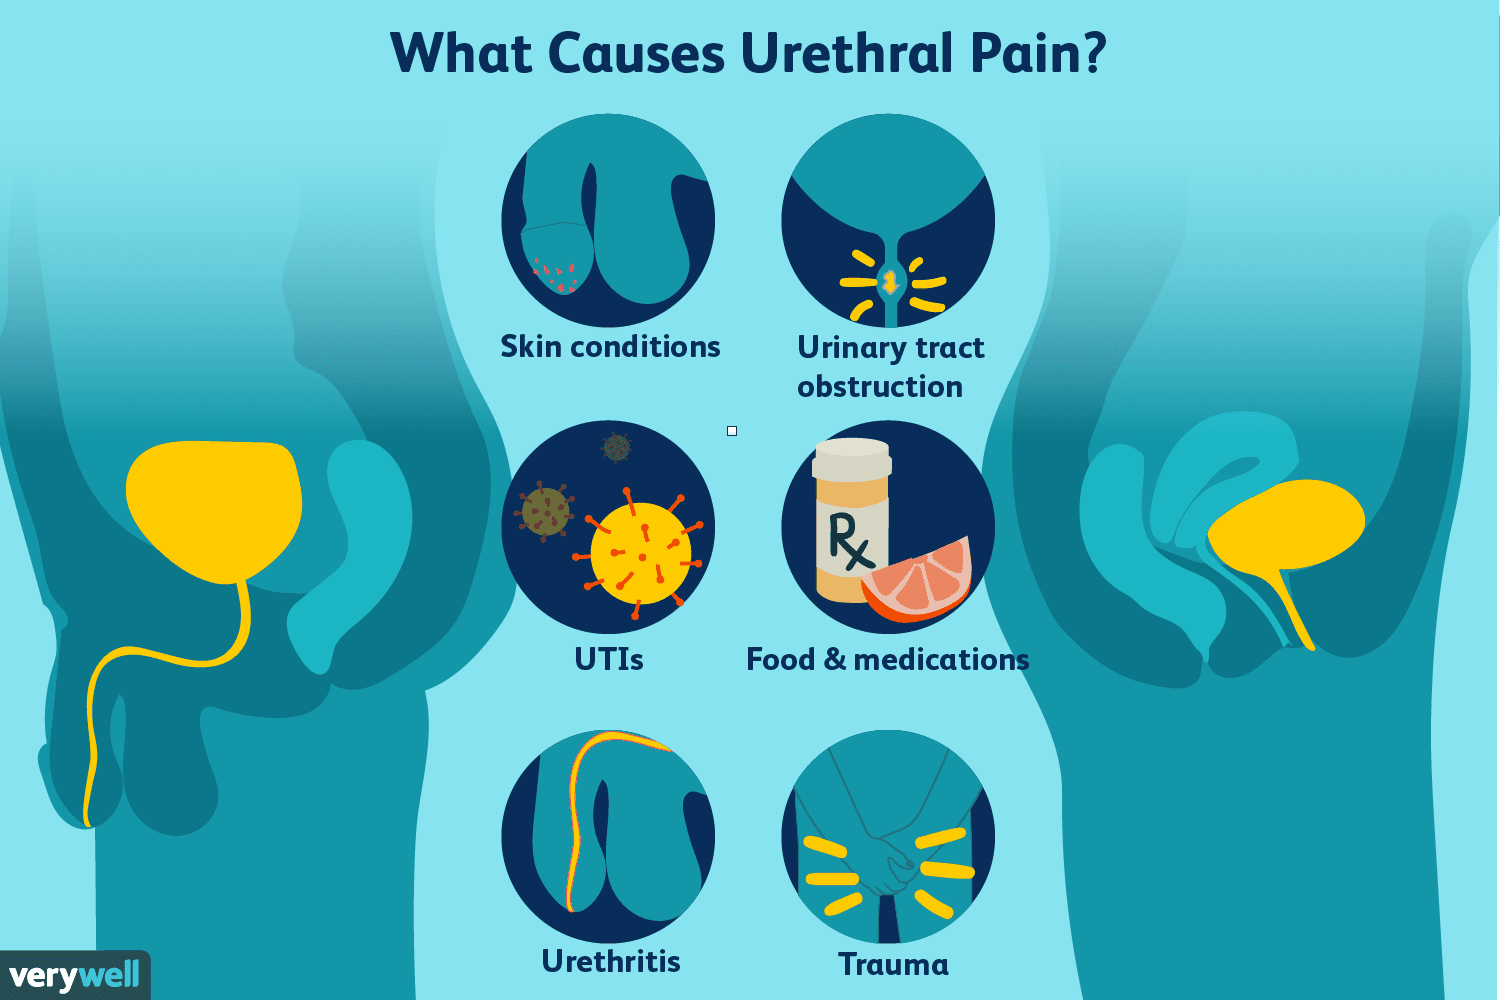 What causes urethral pain?